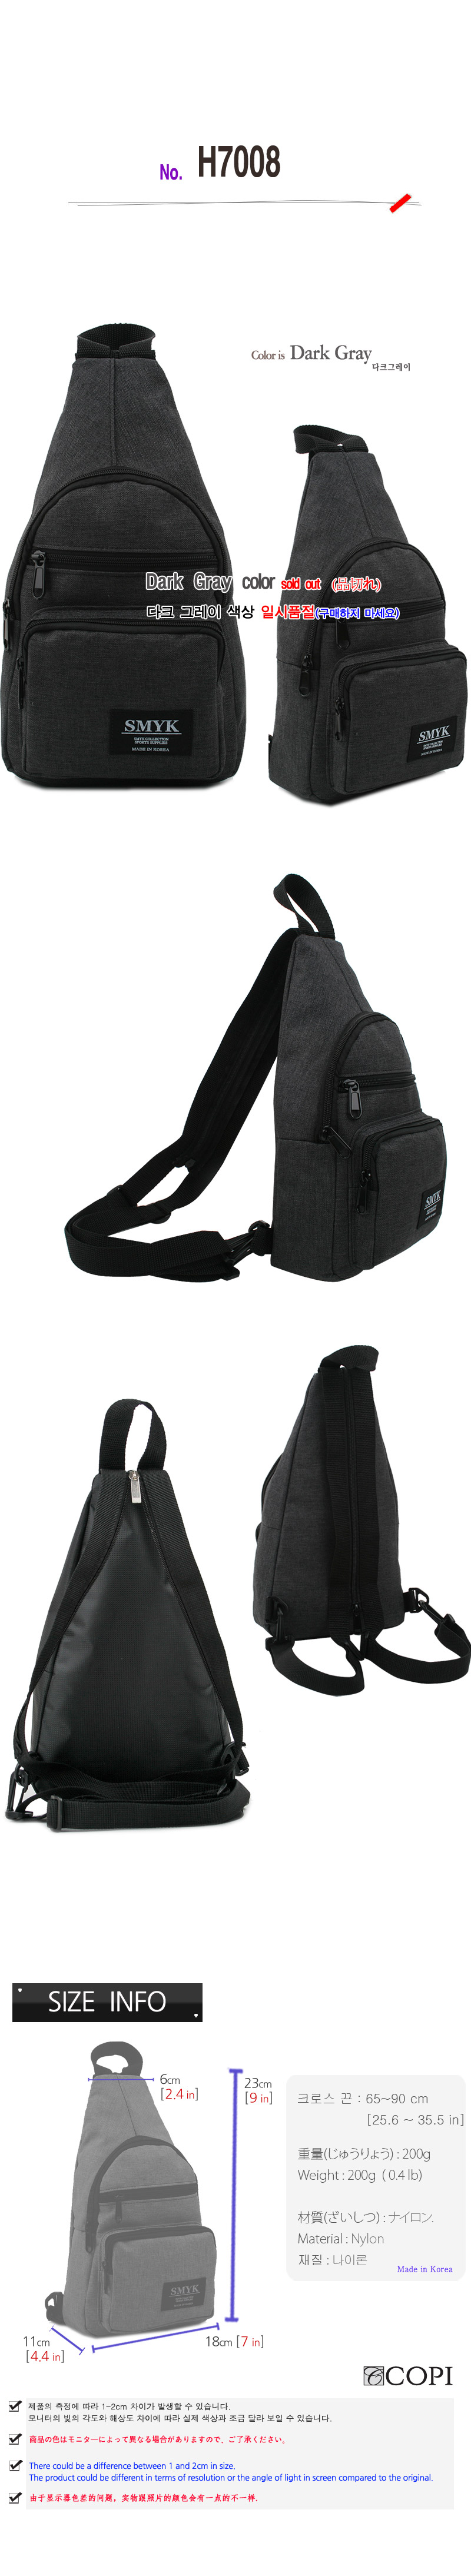 backpack no.H7008view